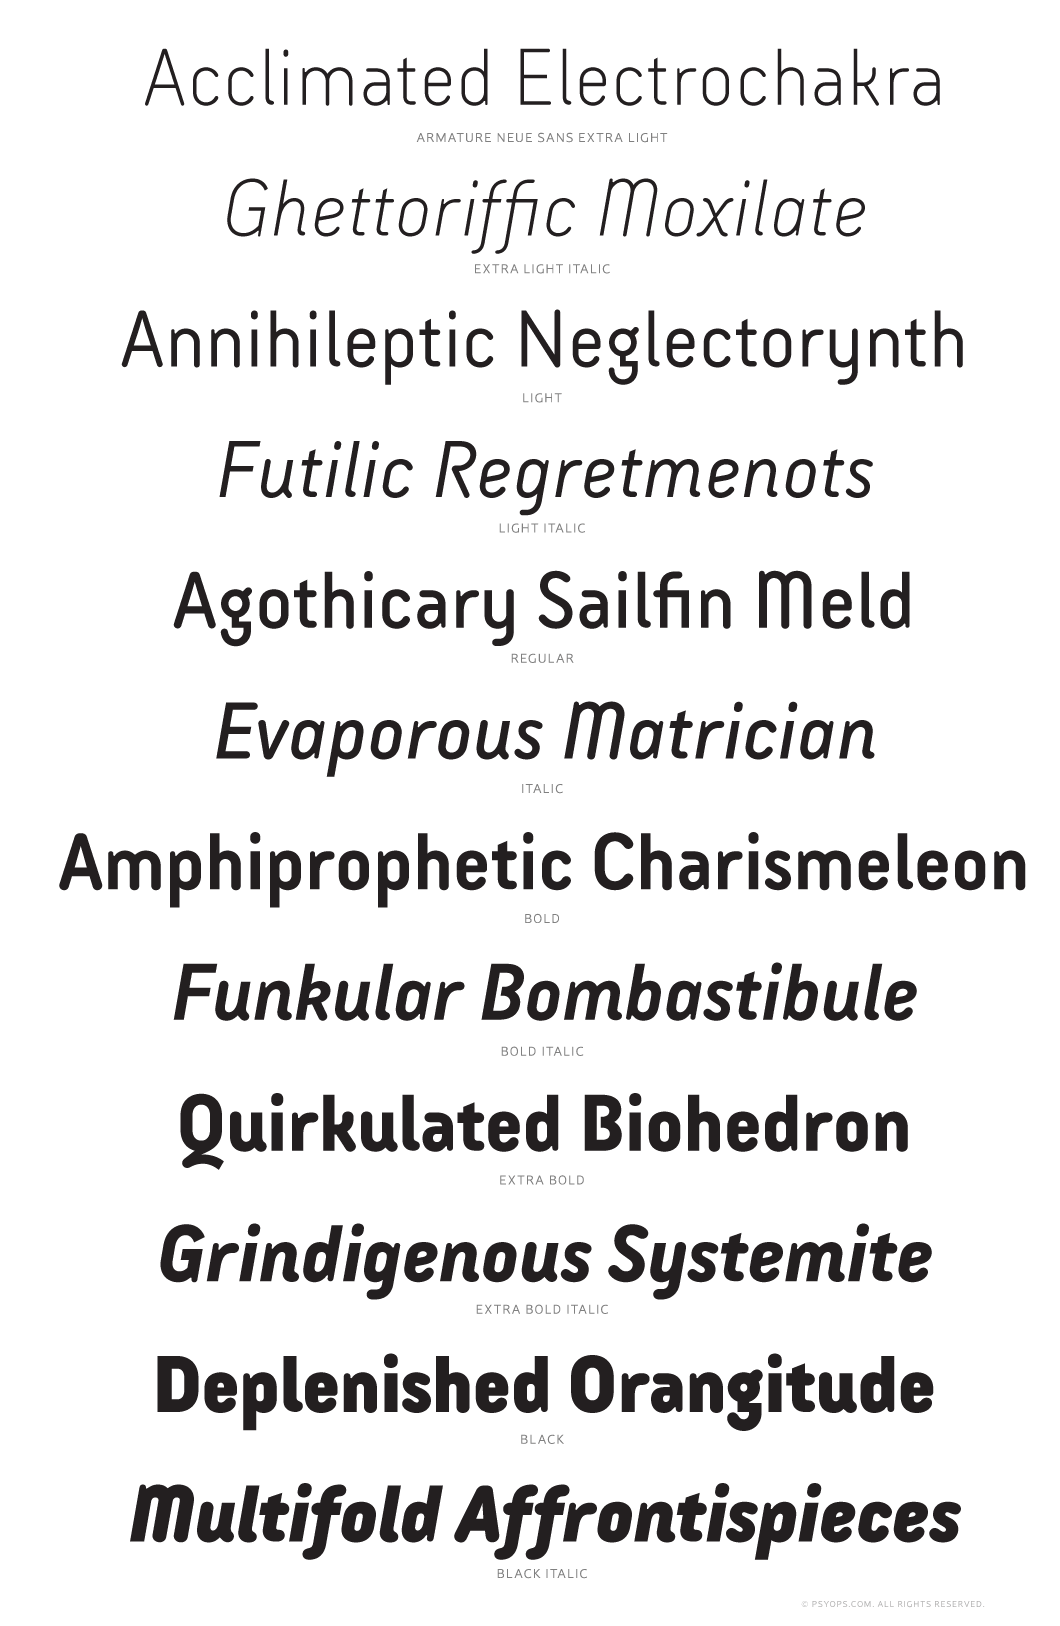 Armature Neue Sans by Bob Aufuldish